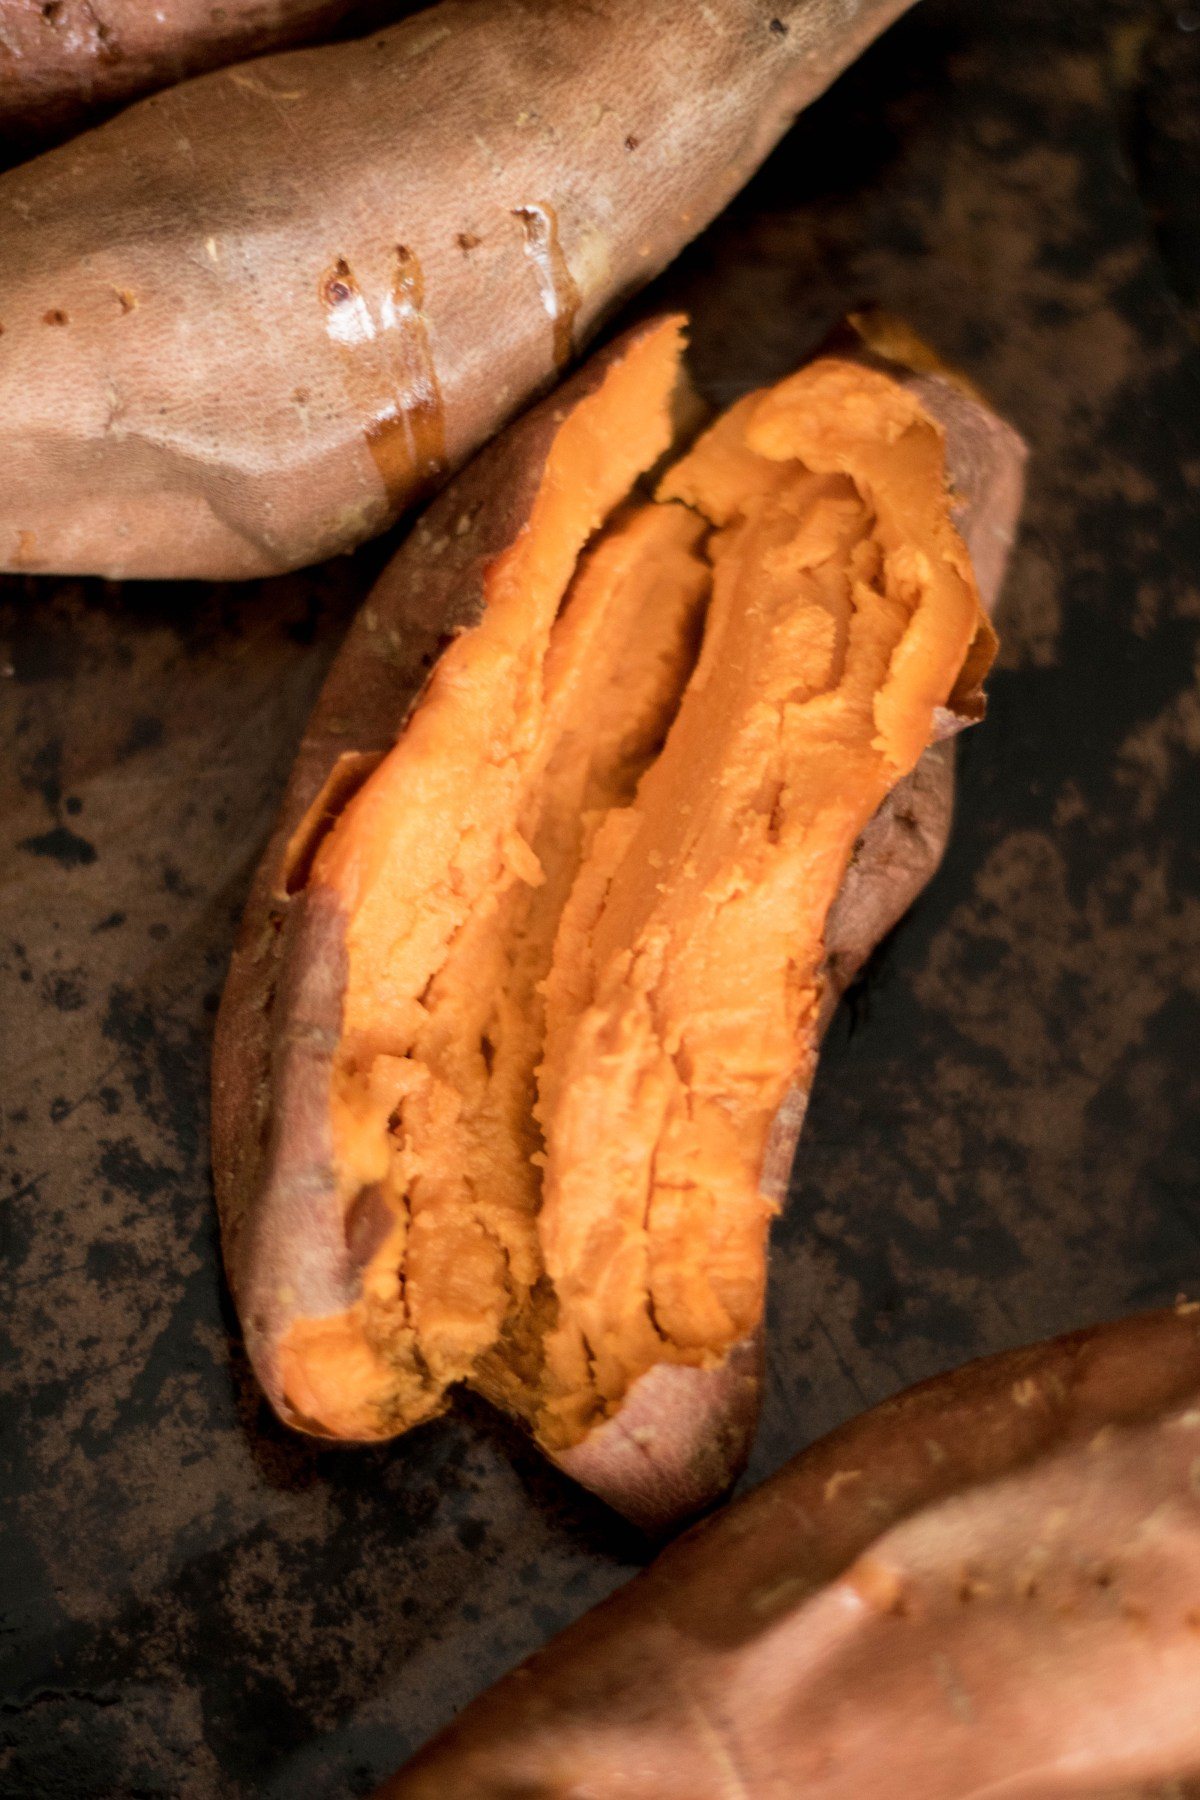 Oven baked sweet potato laying on black background